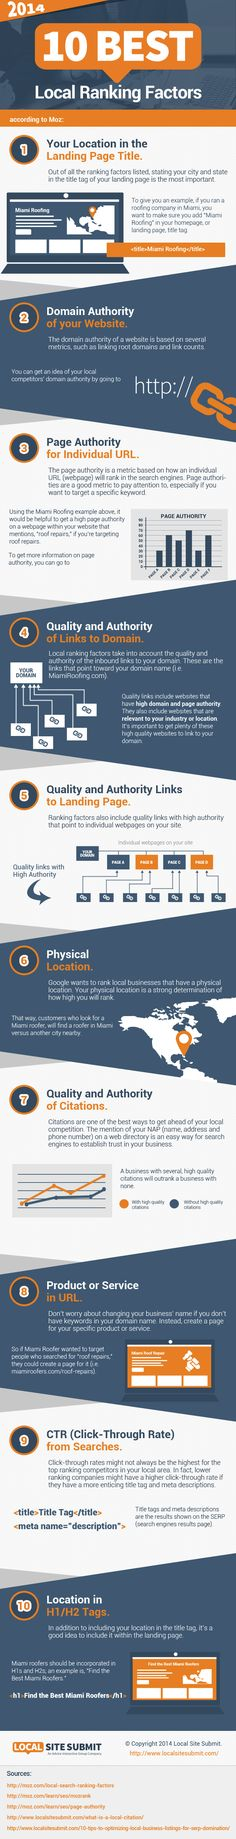 The Top 10 Local Search Ranking Factors from 2014 [INFOGRAPHIC] | Social Media Today http://www.intelisystems.com